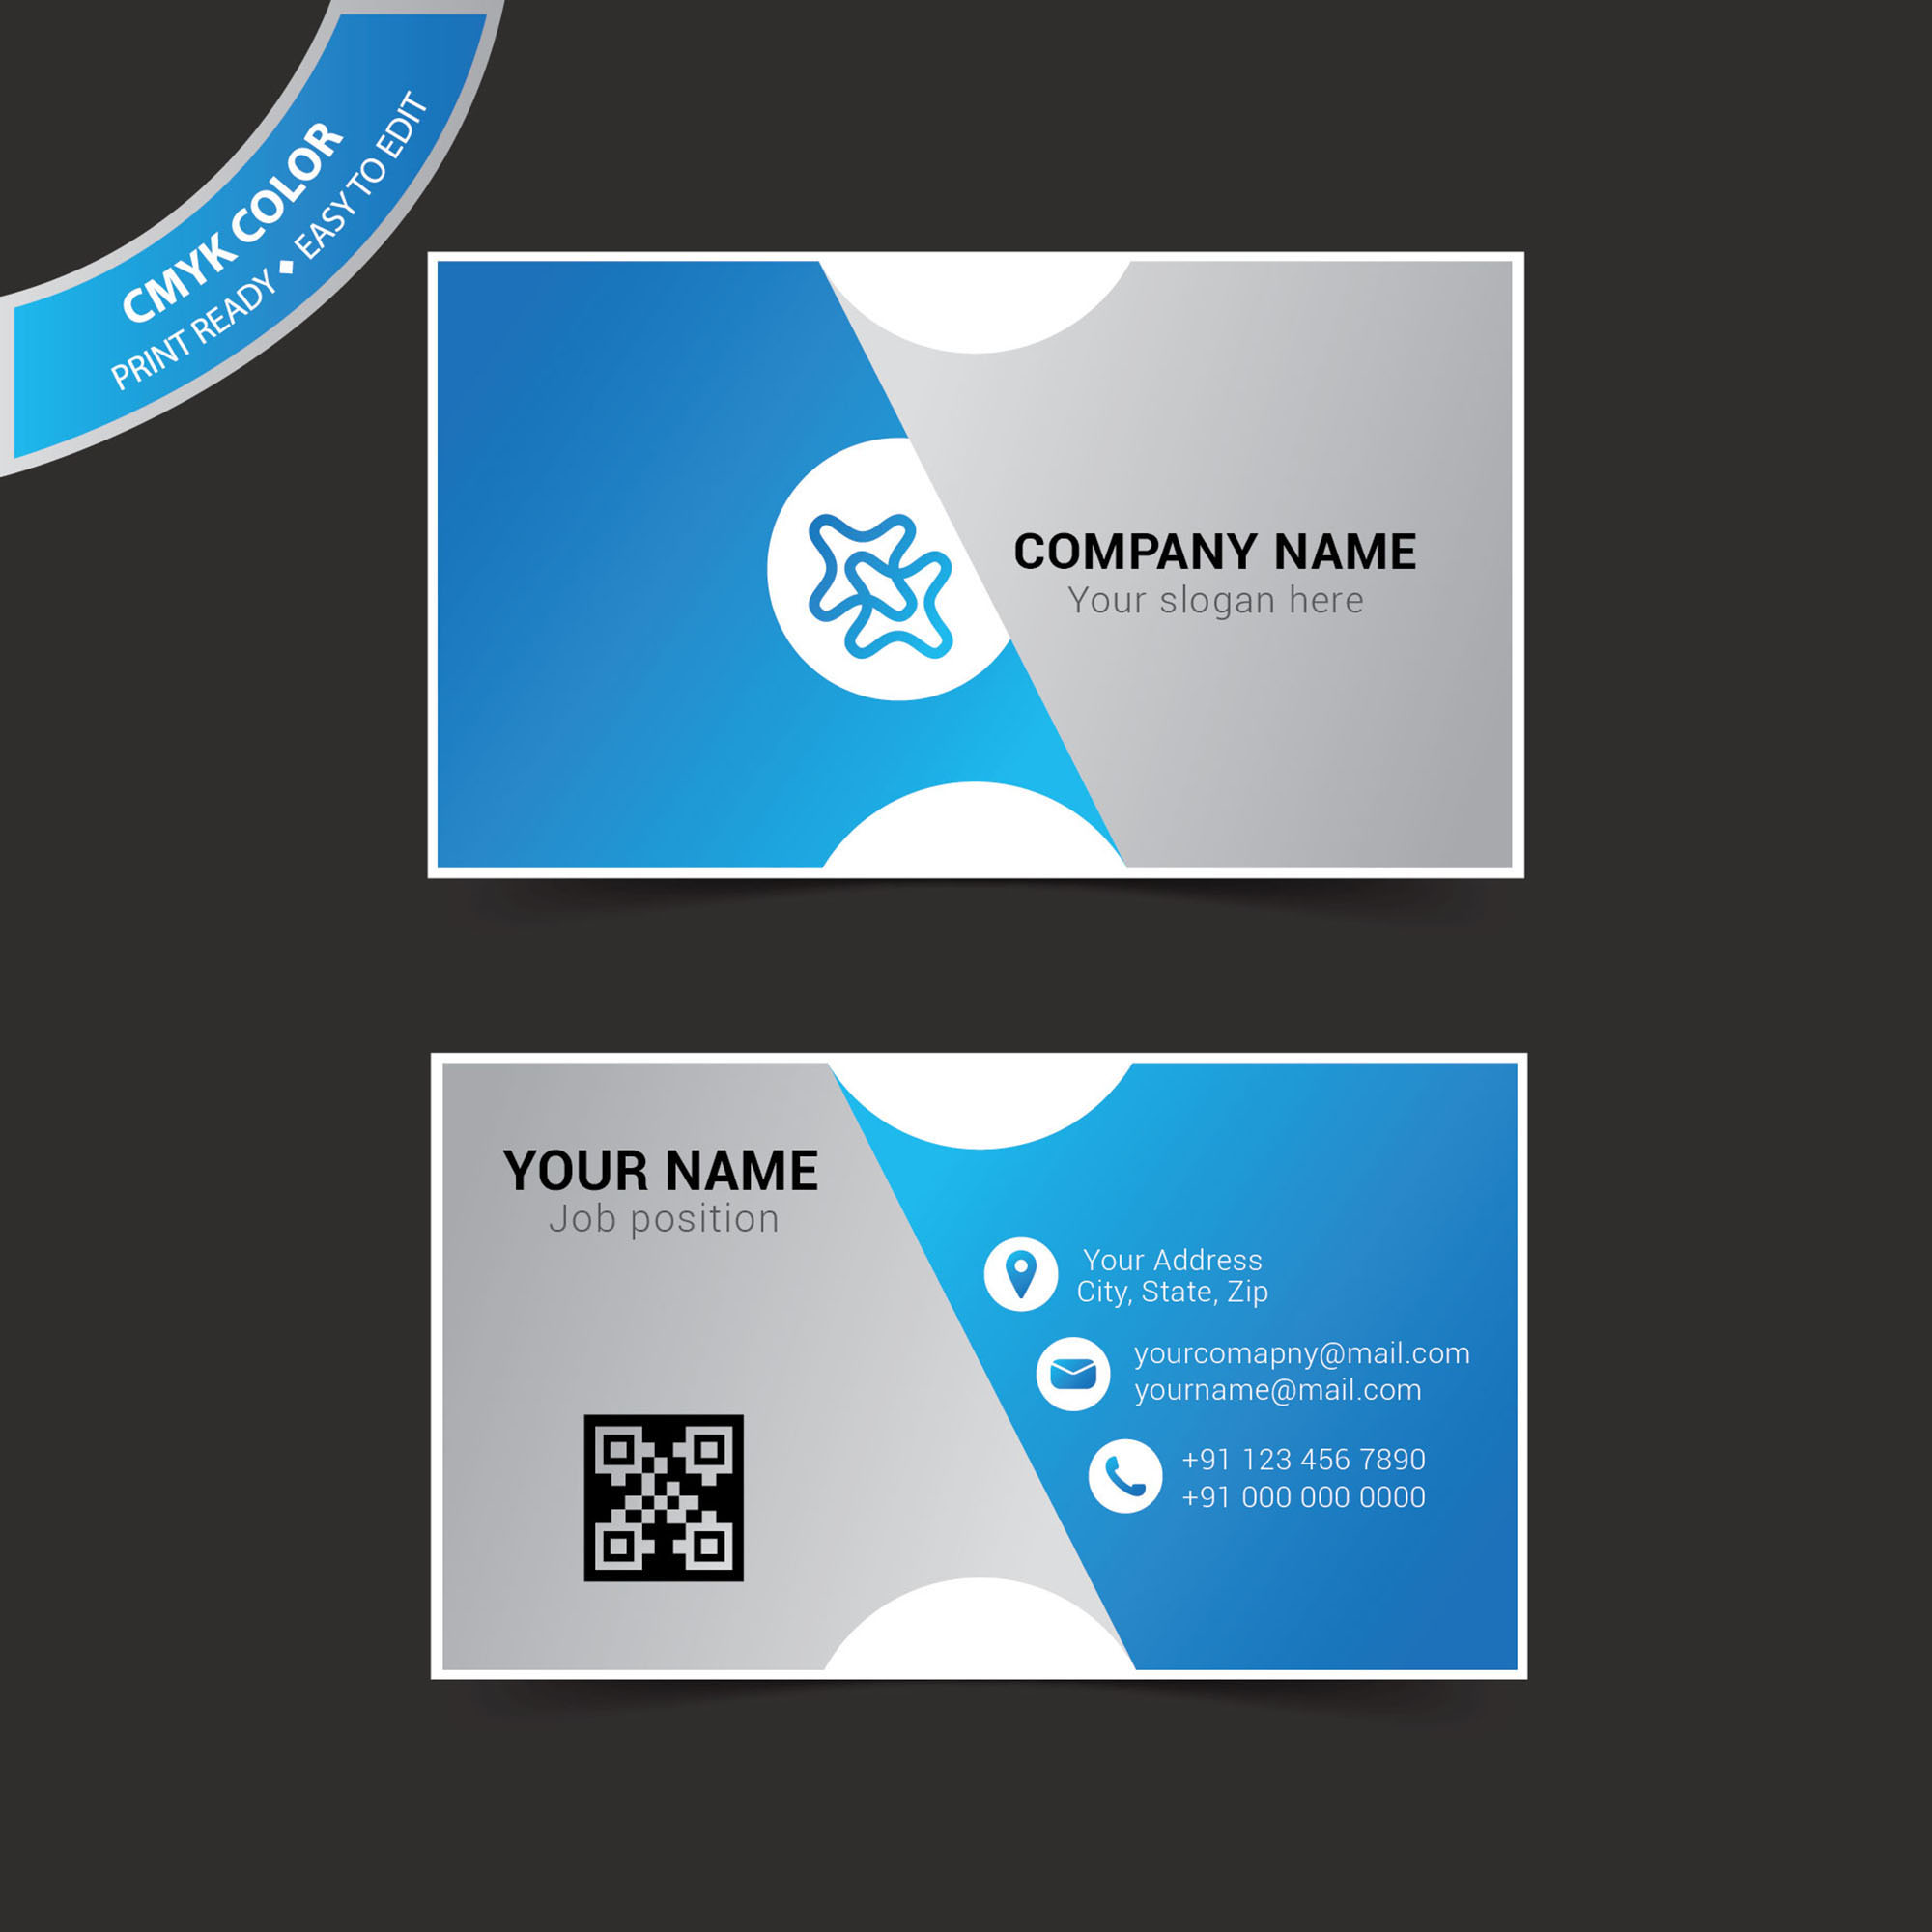 Business card template illustrator free vector wisxi abstract business card design business creative graphic layout template reheart Choice Image